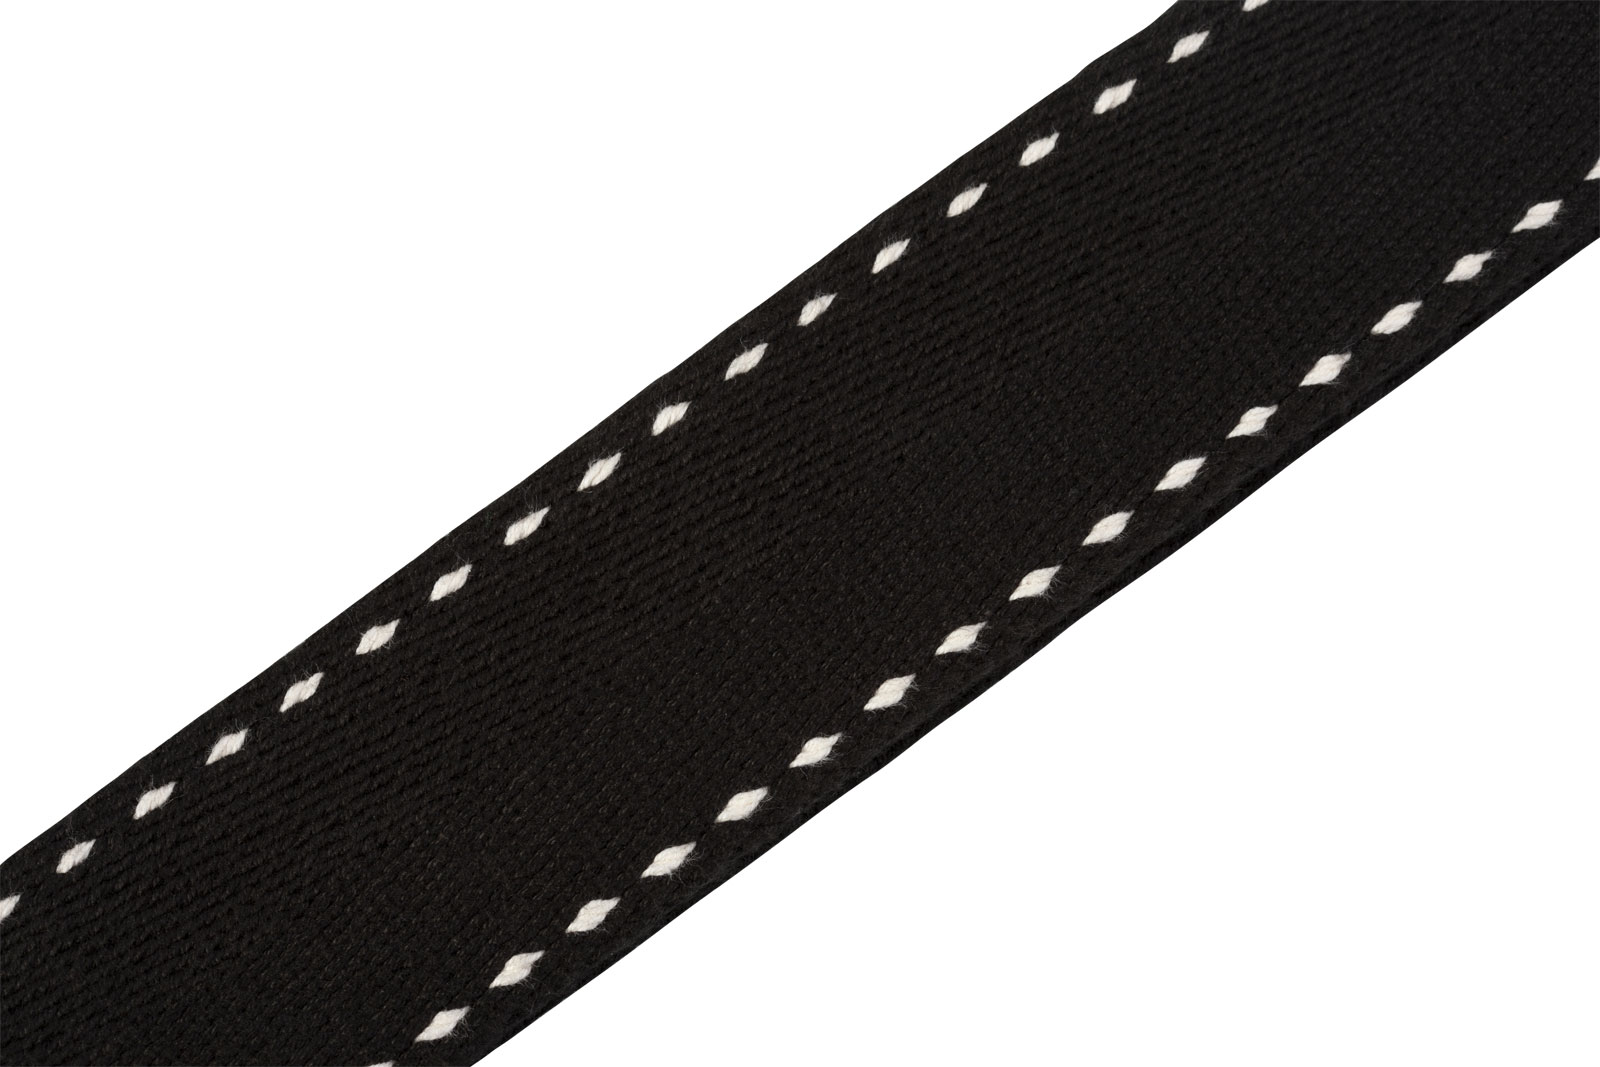 5 CM THICK COTTON COTTON WITH TOPSTITCHED EDGES AND BLACK GRAVE LEATHER EXTREMITIES